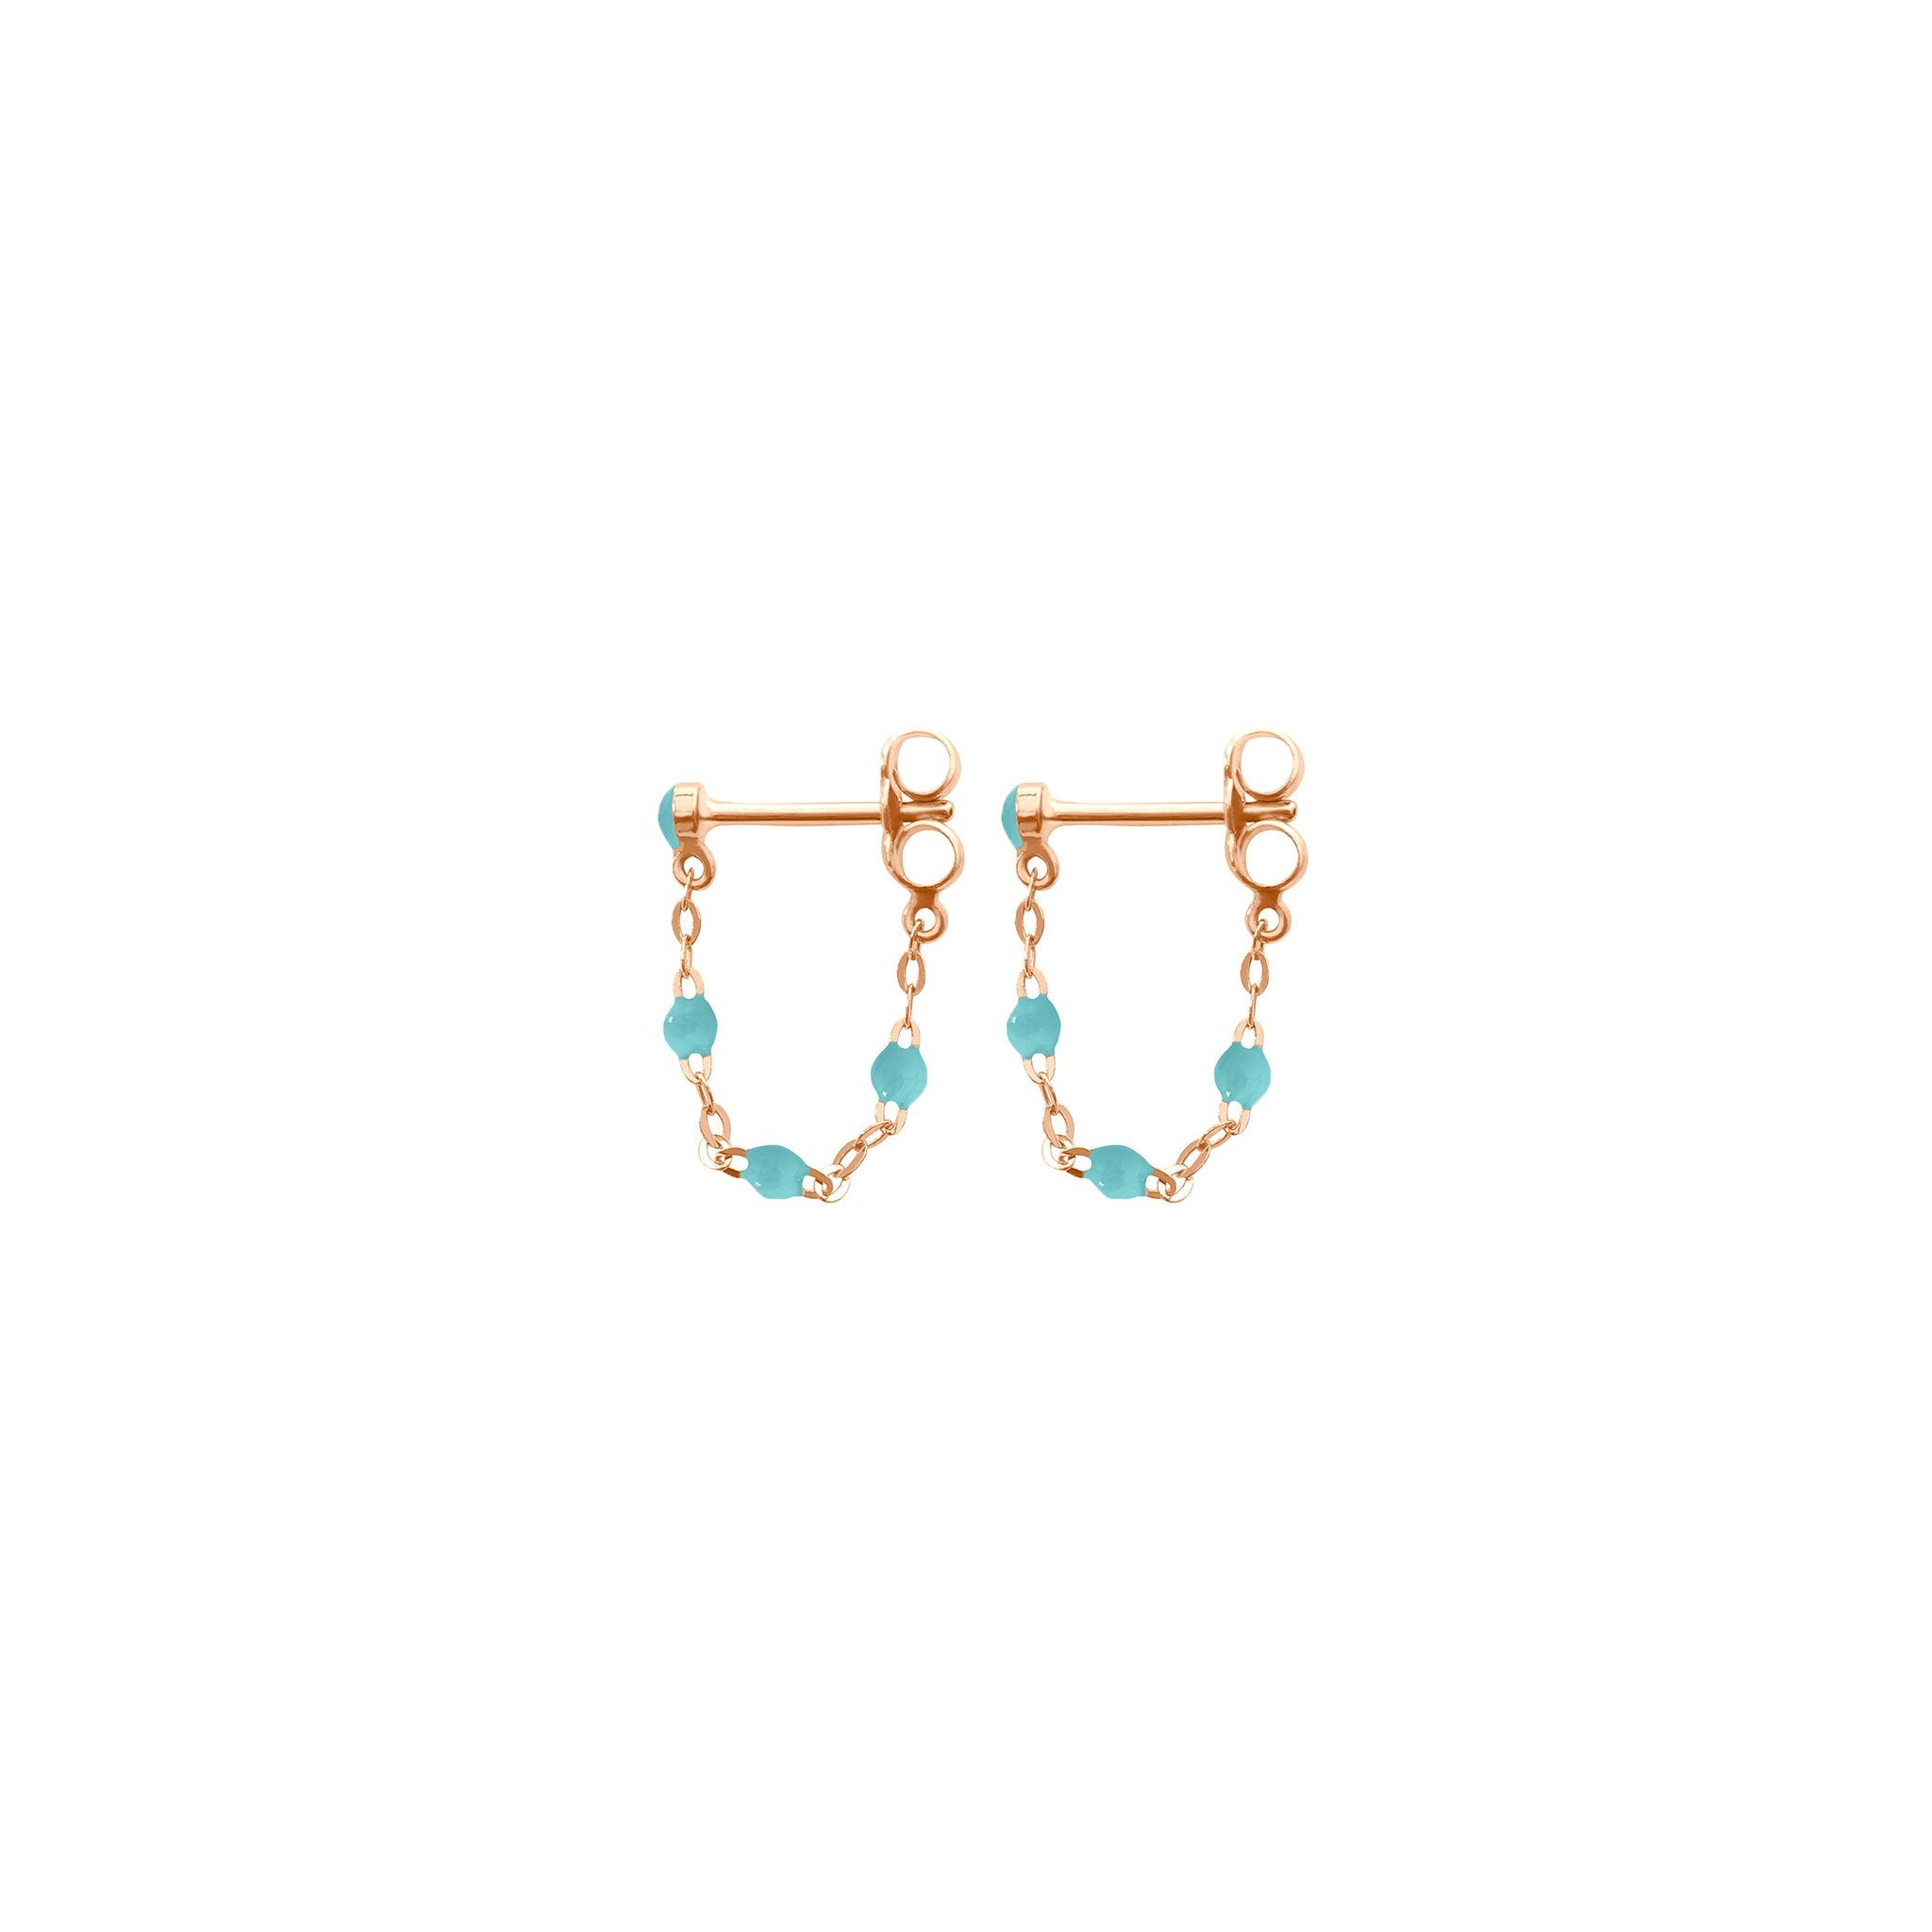 Gigi Clozeau - Classic Gigi Turquoise Green earrings, Rose Gold